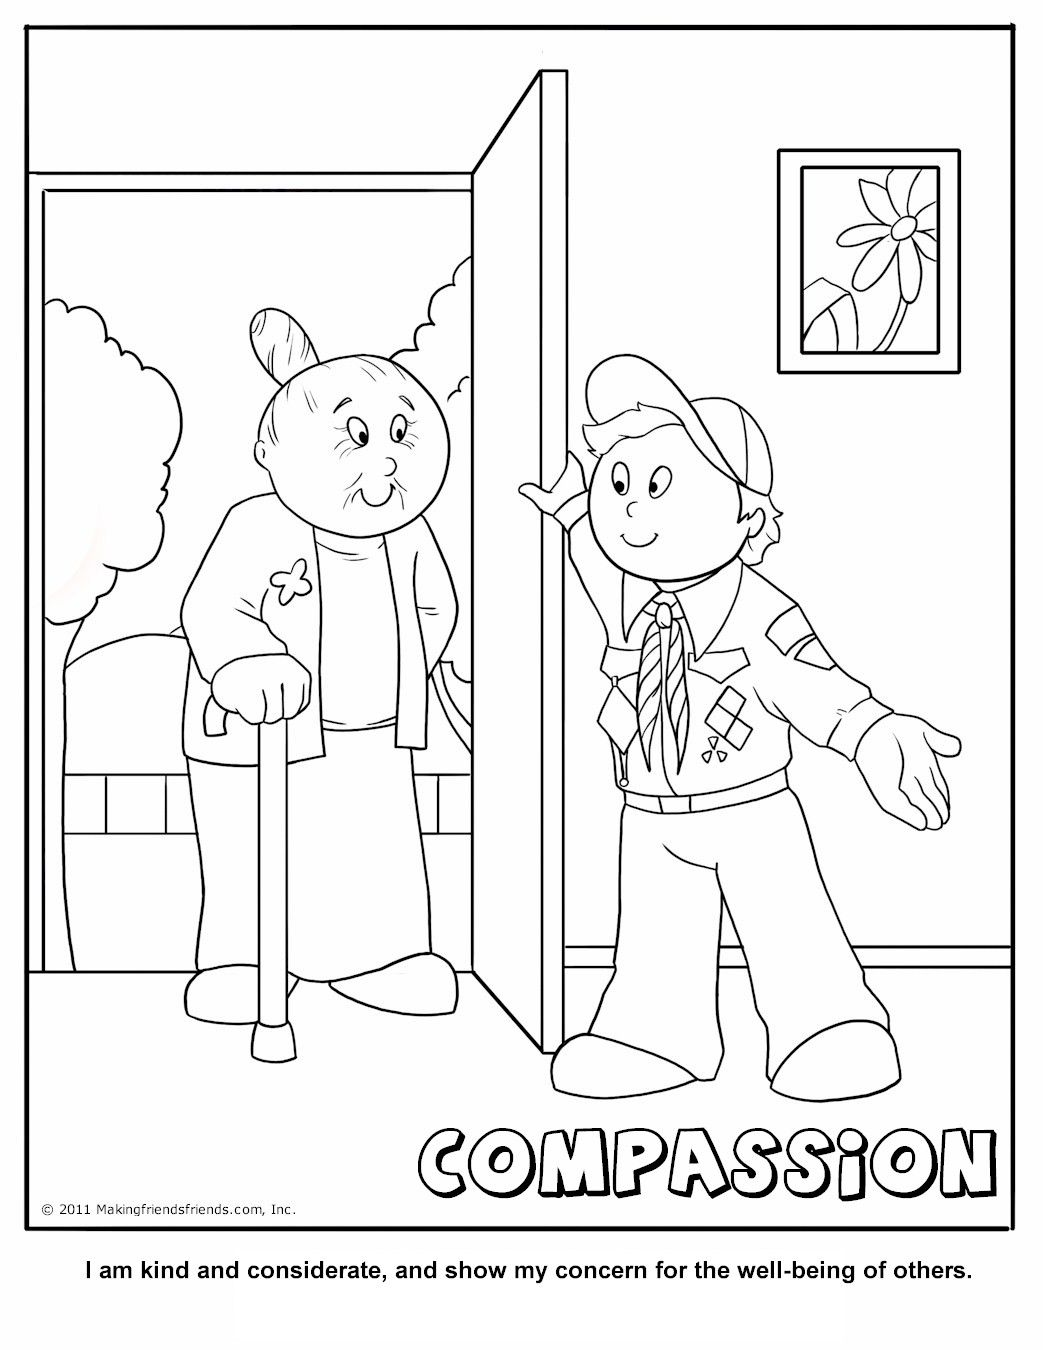 Compassion Coloring Page. A Cub Scouting Core Value